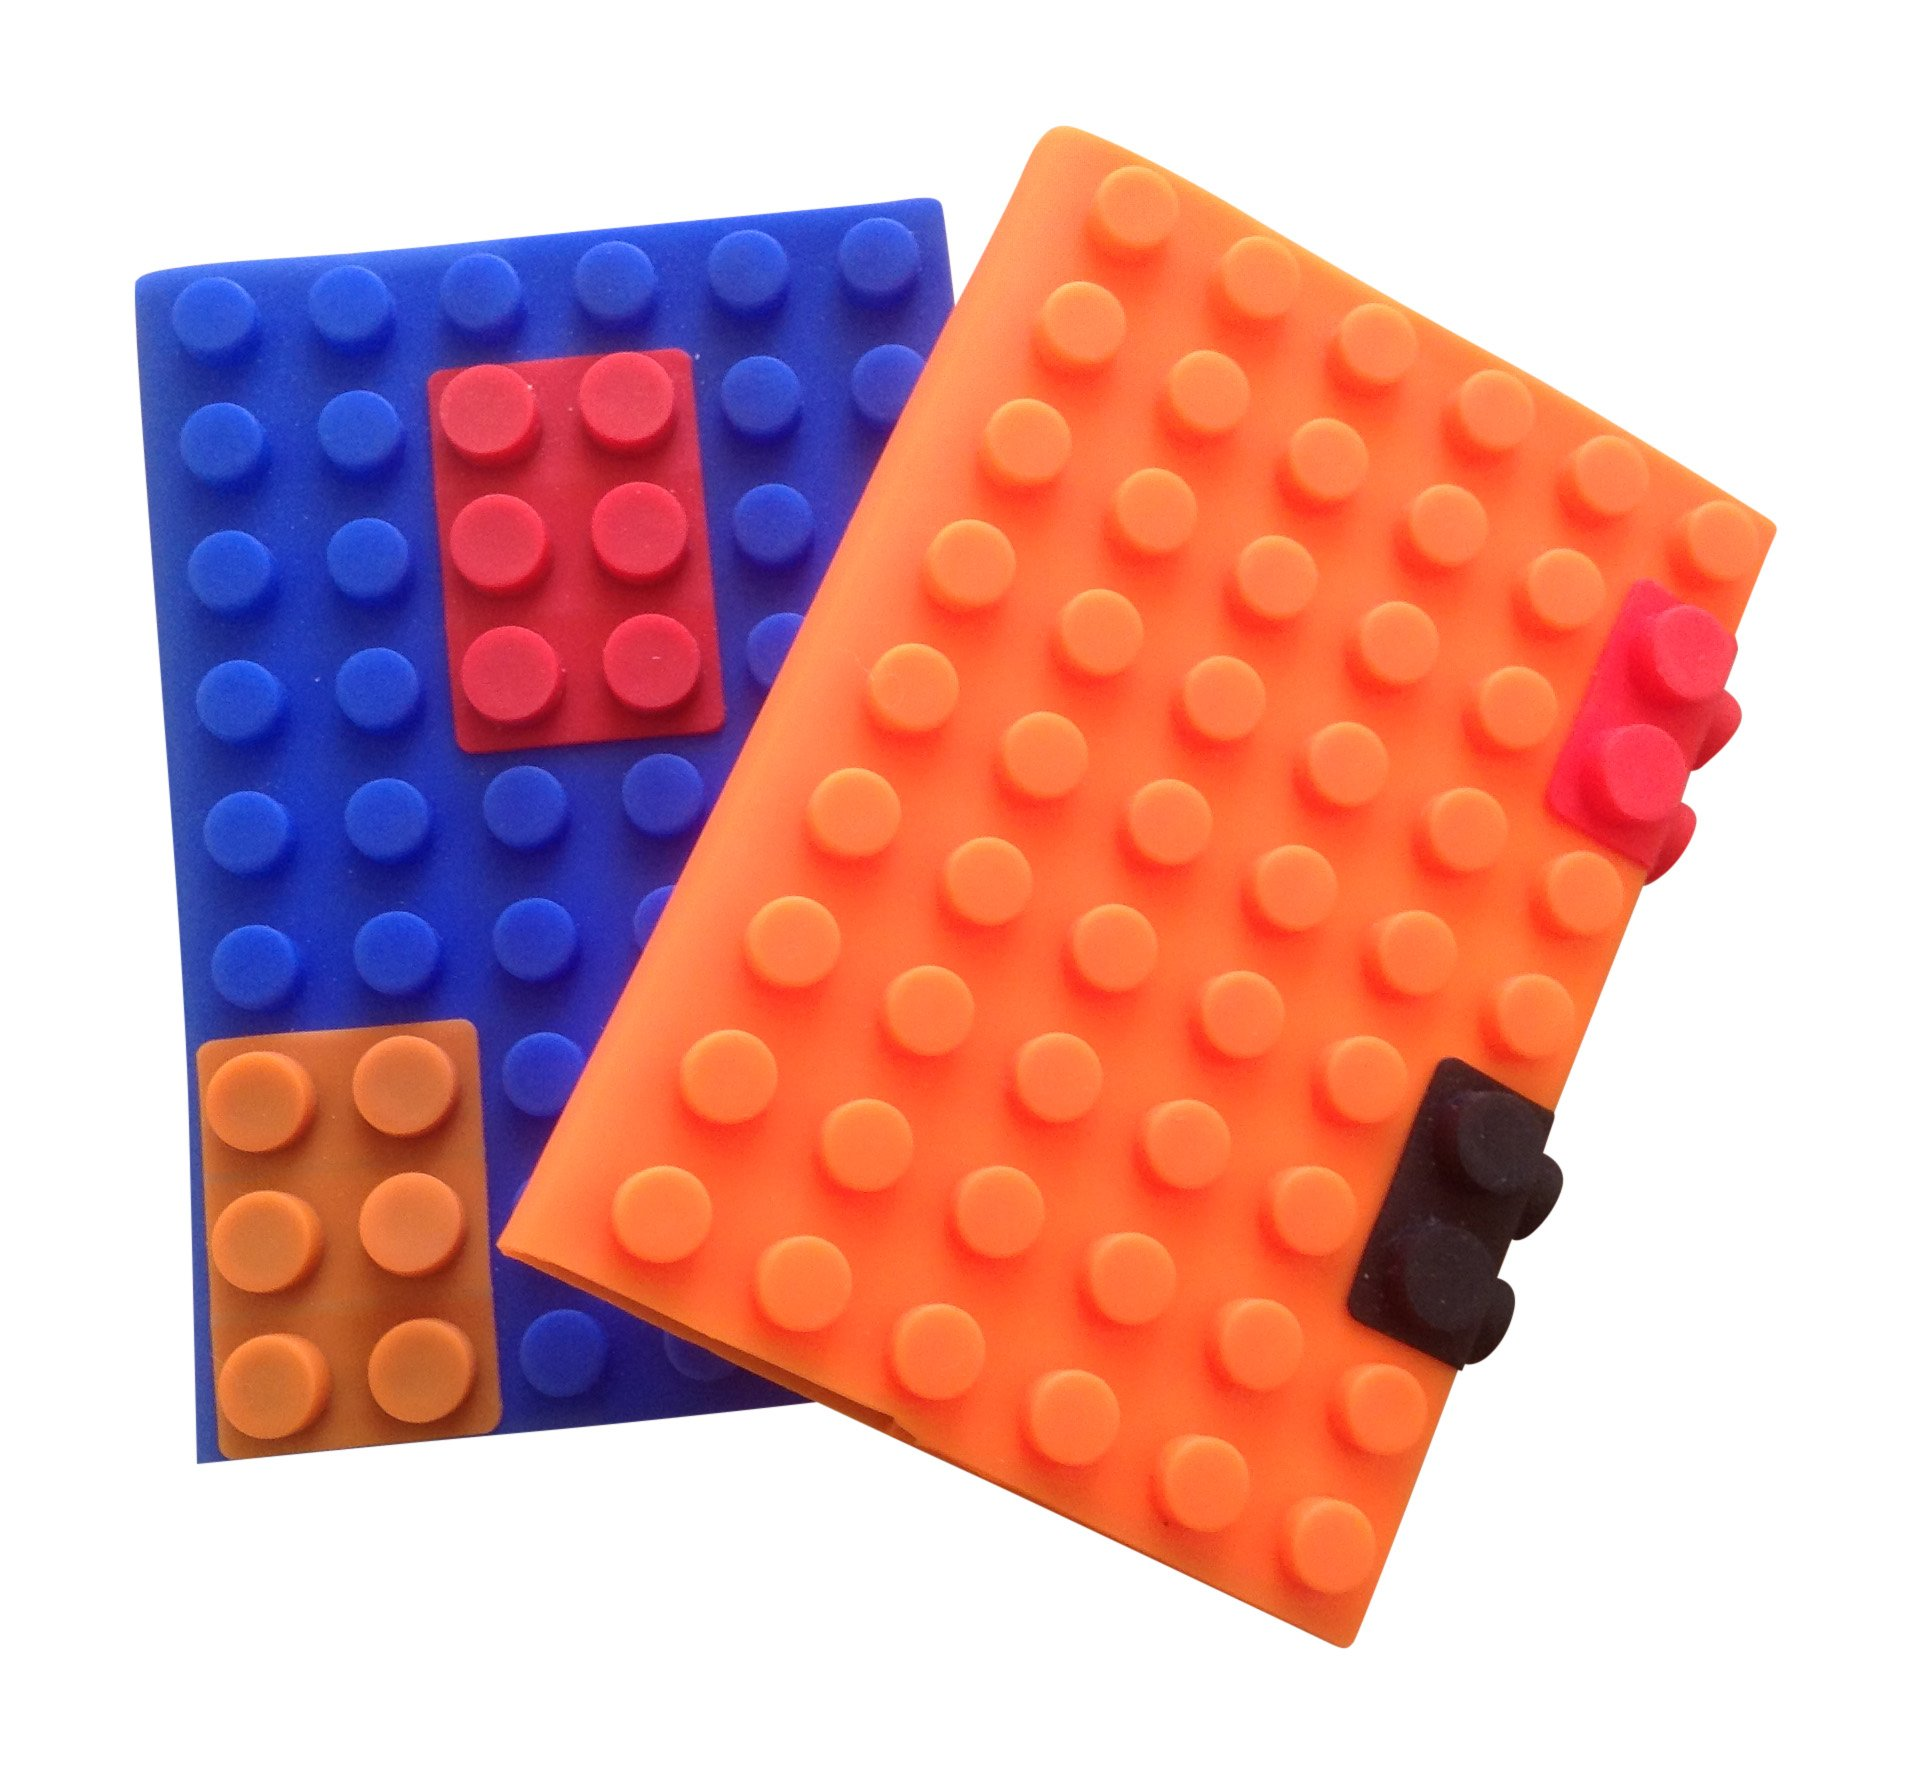 A6 Notebook Soft Cover Small Journal Diary Writing Pad (2-pack) | Pocket Size Fun Building Block Silicone | Use For Office | Kids Party Favors. 100 Ruled Pages 4'' x 5.75''. Capture Your Best Ideas